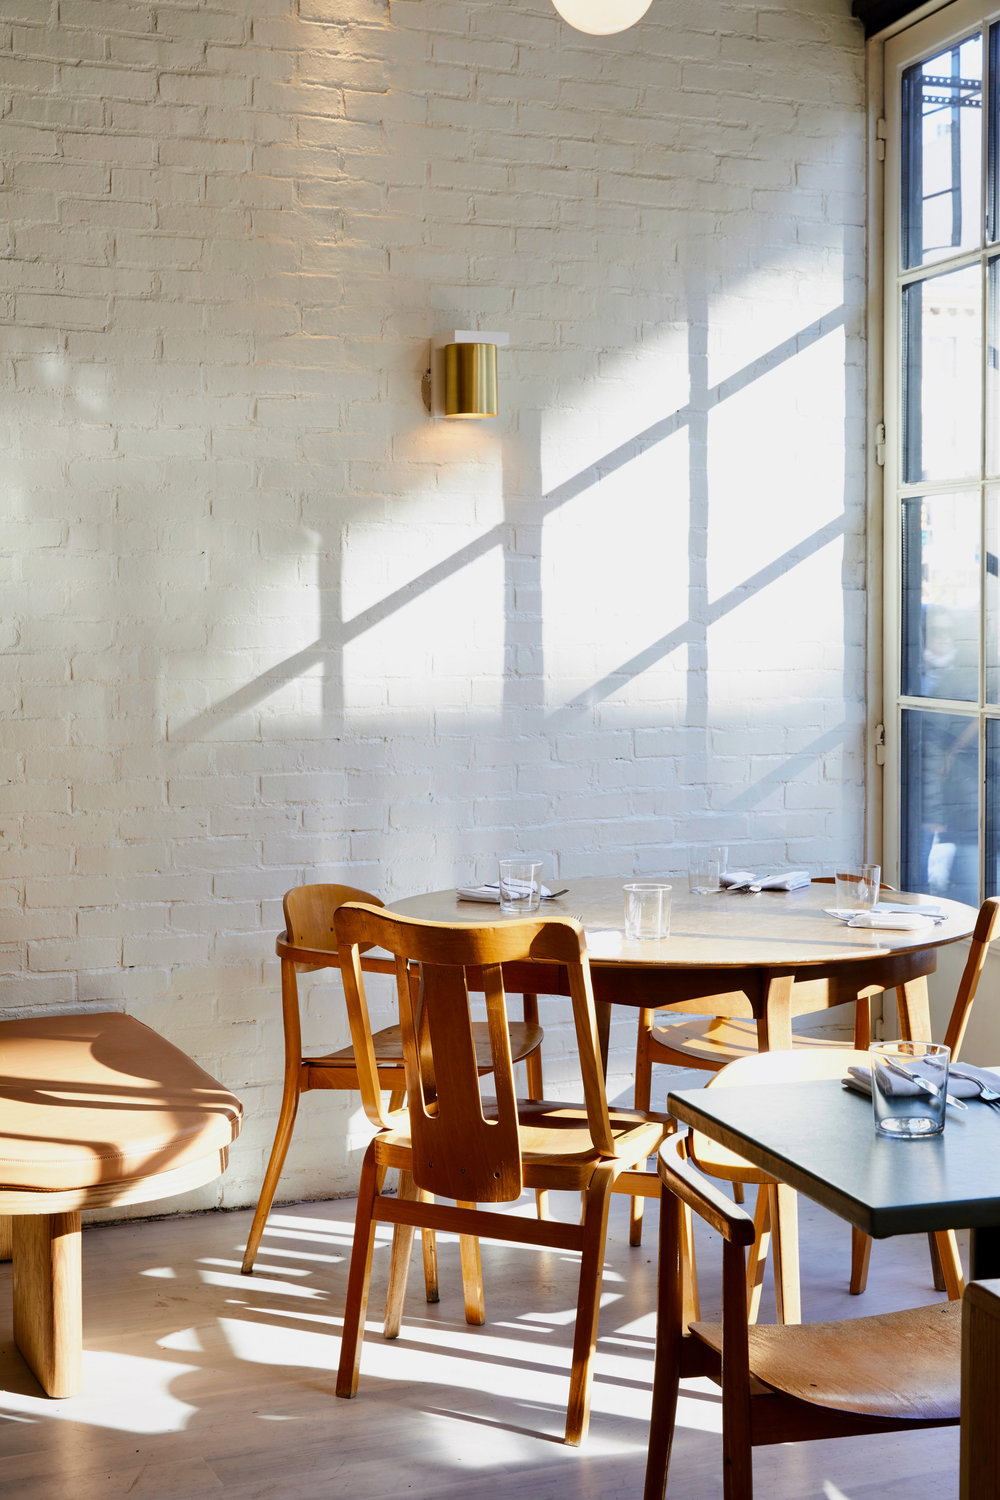 de-maria-the-mp-shift-interiors-restaurants-new-york-city-usa_dezeen_2364_col_2.jpg